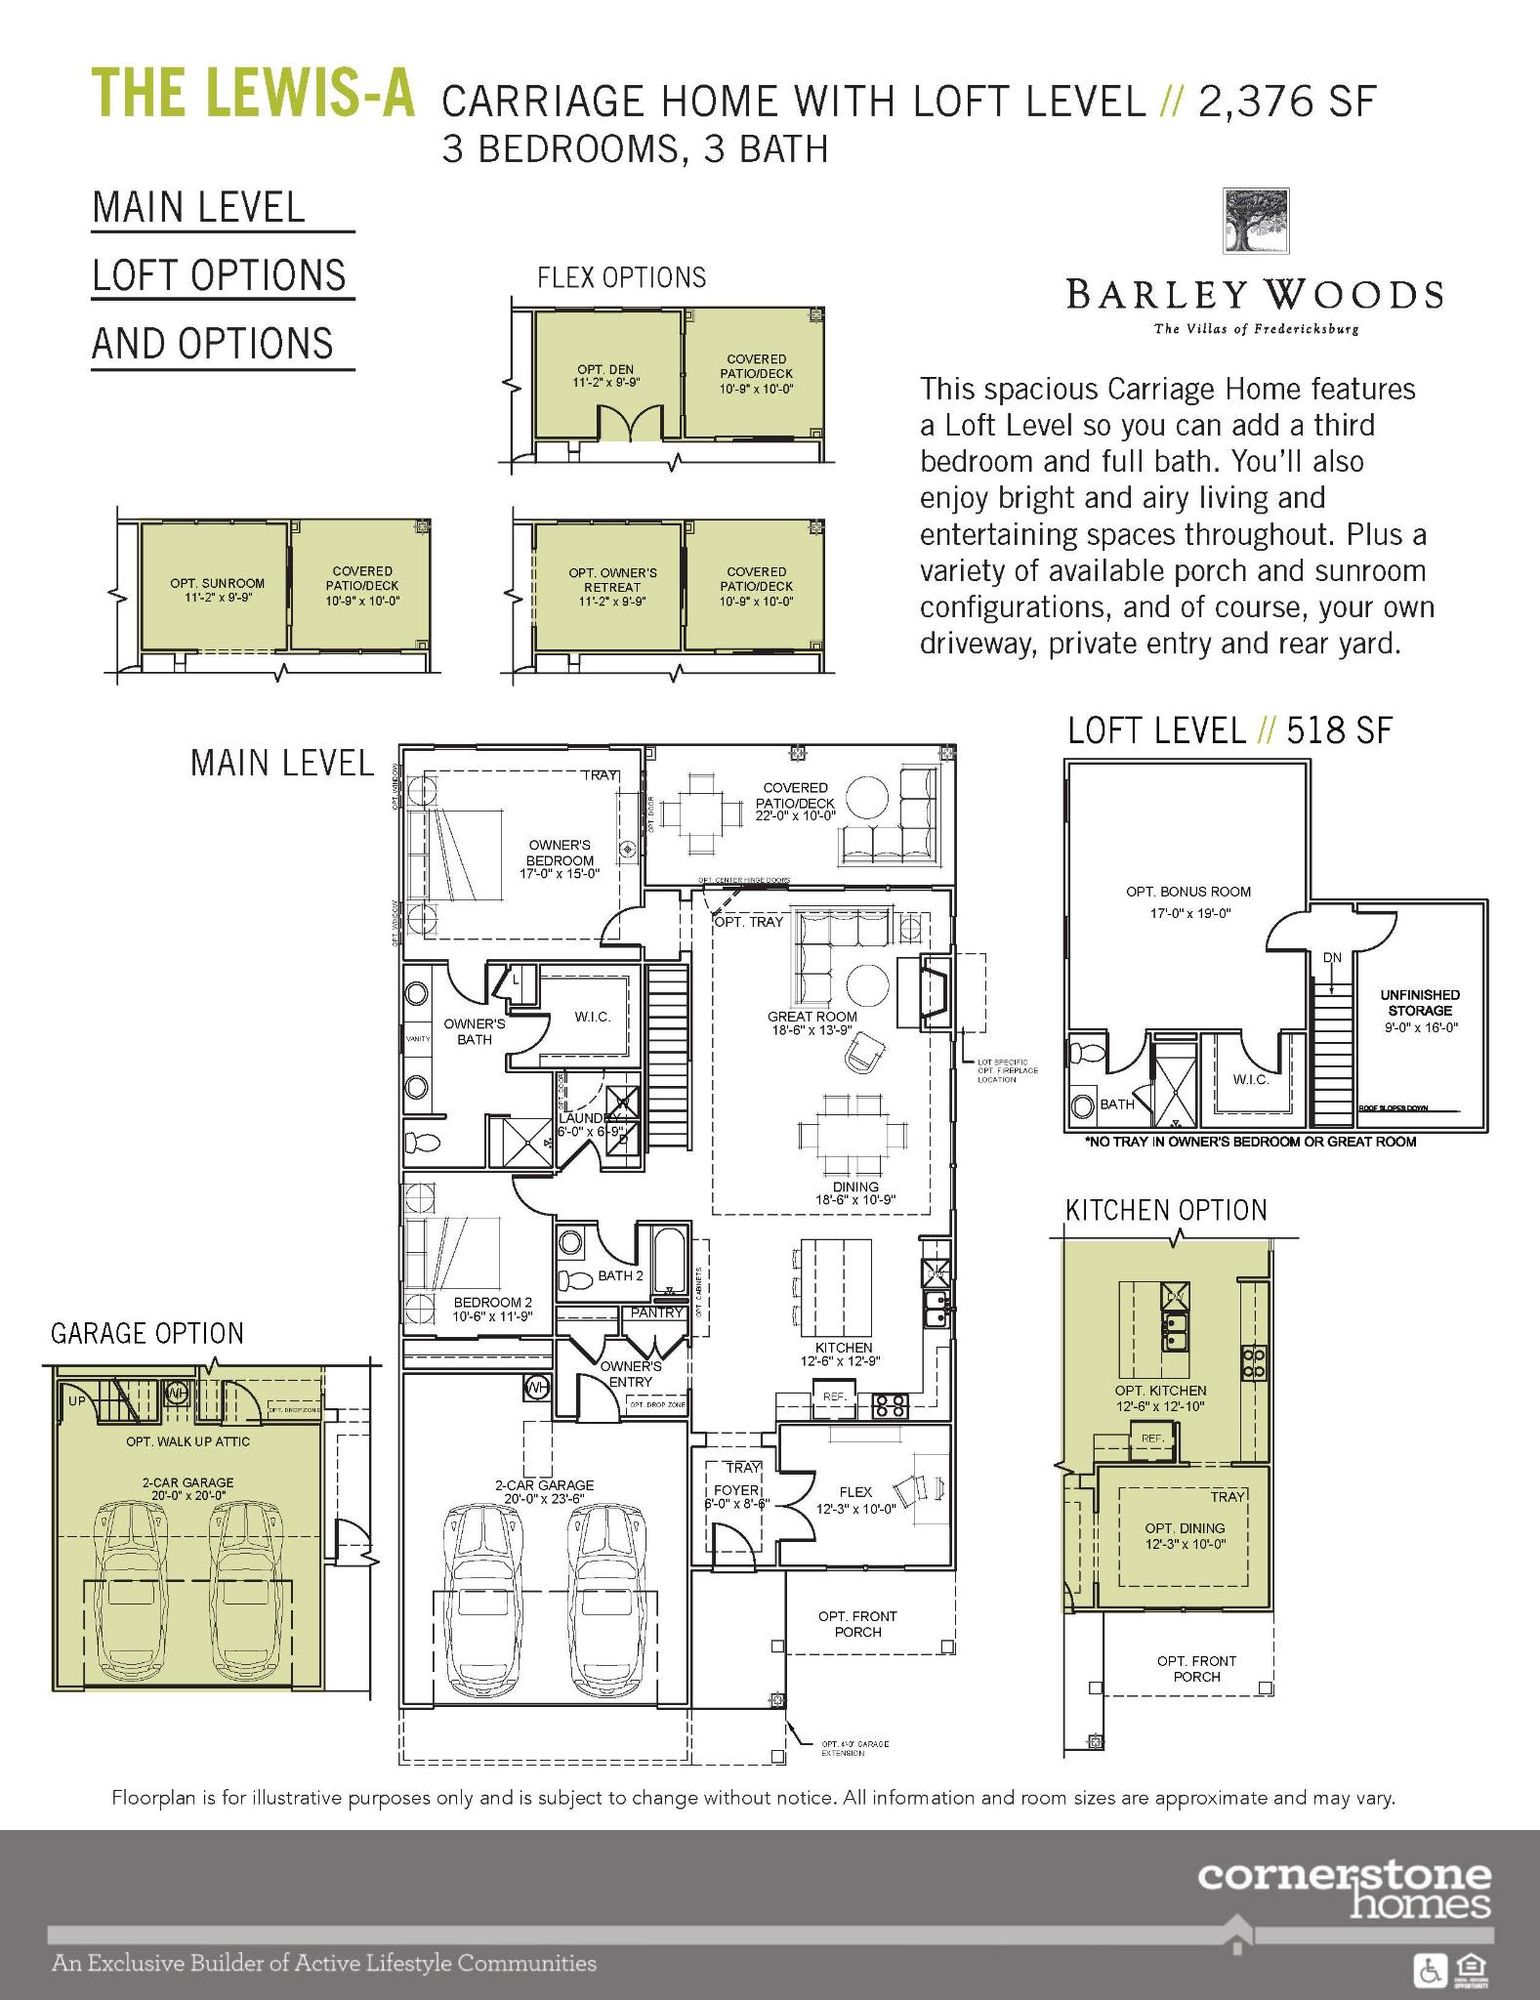 The Lewis w/Loft Level - Barley Woods